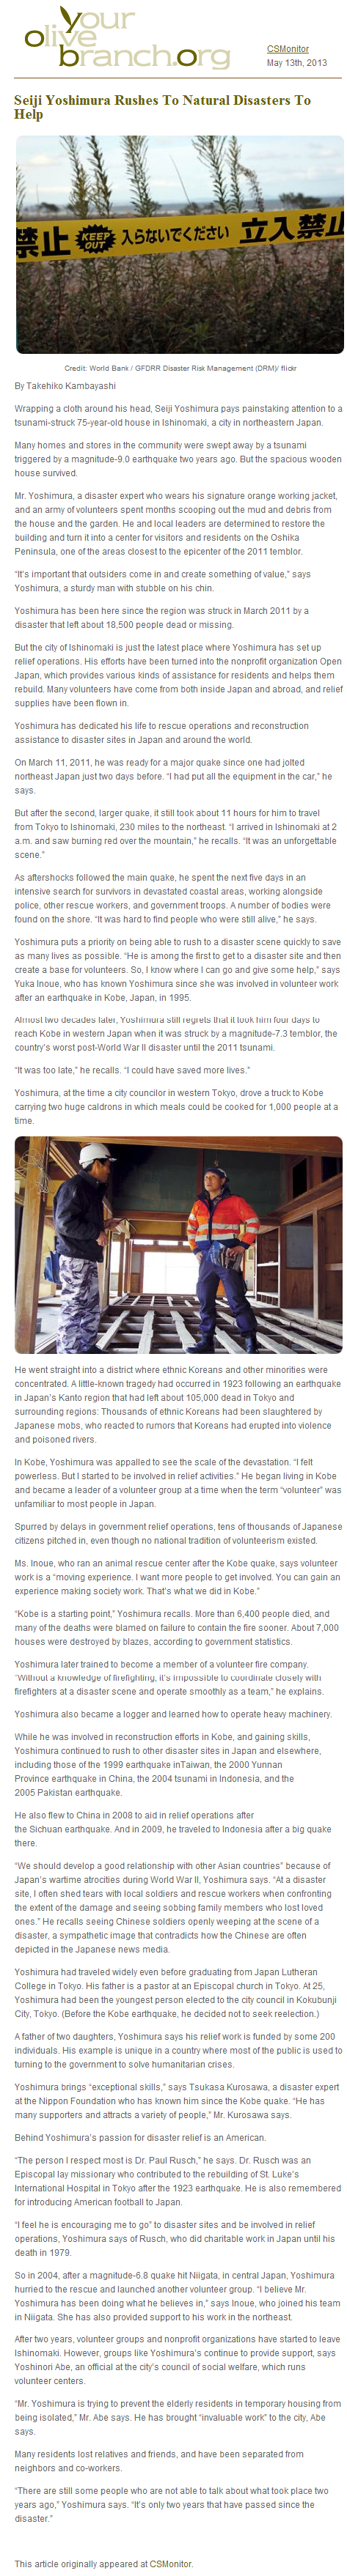 Seiji Yoshimura Rushes To Natural Disasters To Help - Your Olive Branch News - yobo.png